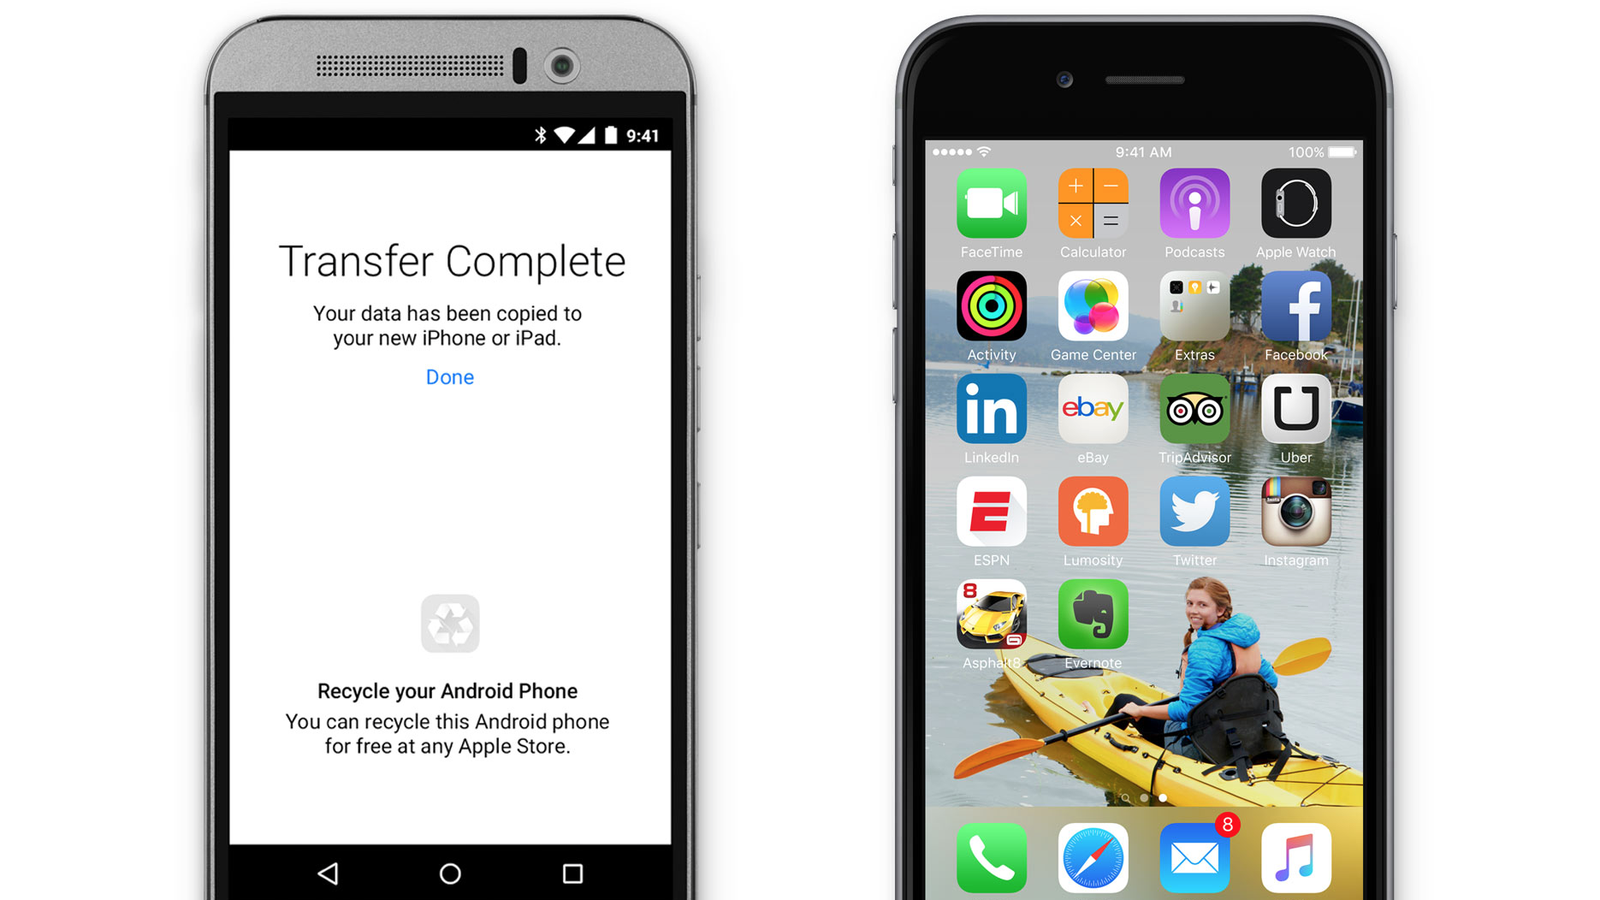 Apple made an Android app that helps people switch to iOS